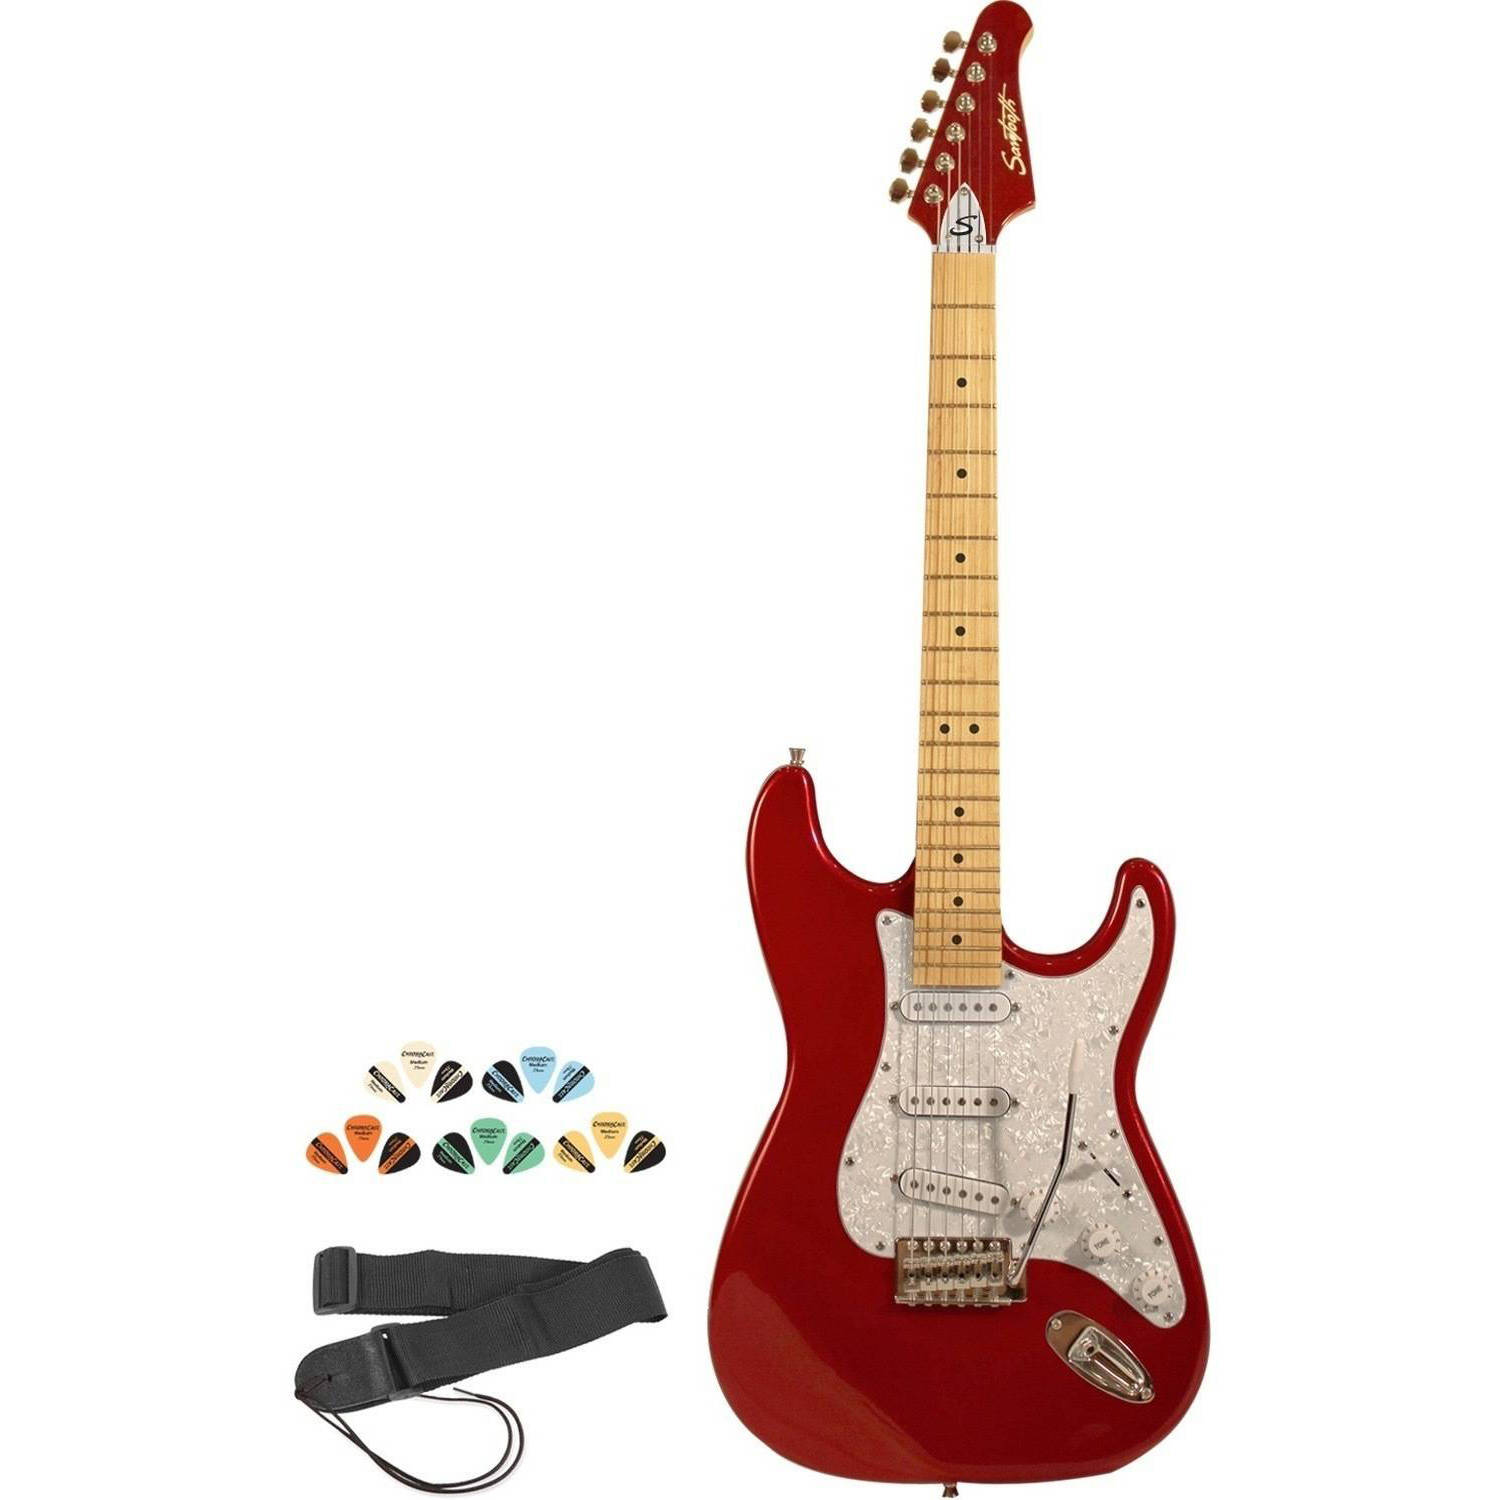 Sawtooth ES Series Electric Guitar Kit with ChromaCast Accessories